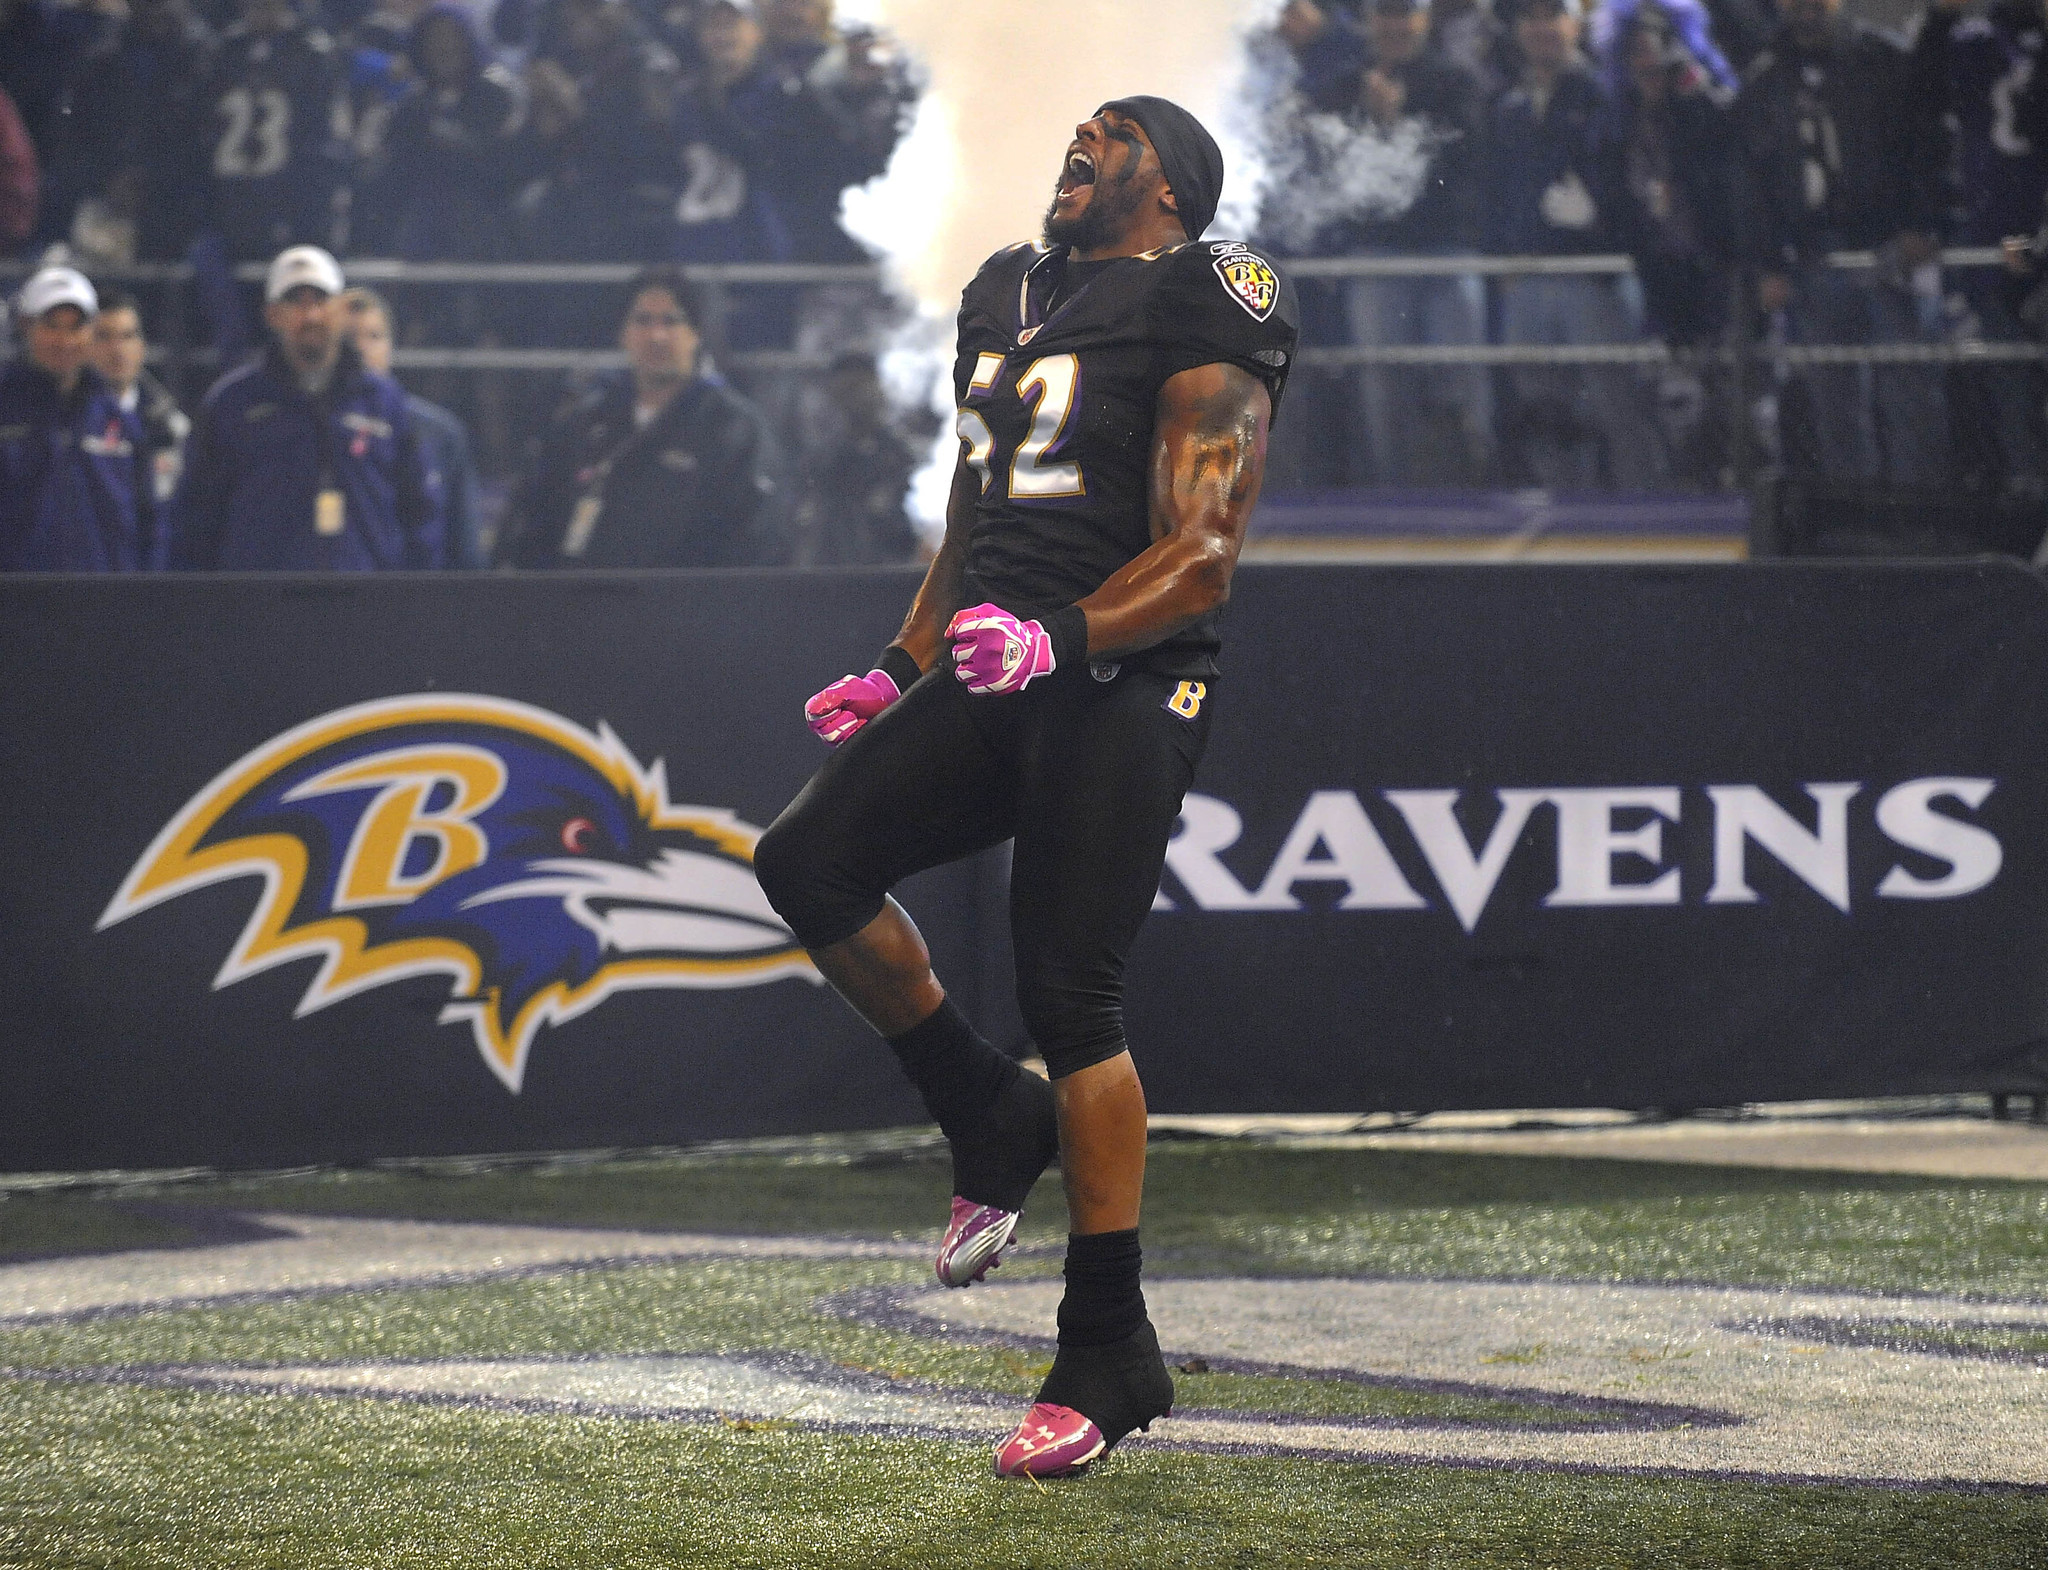 Bal-ravens-news-notes-and-opinions-20170206